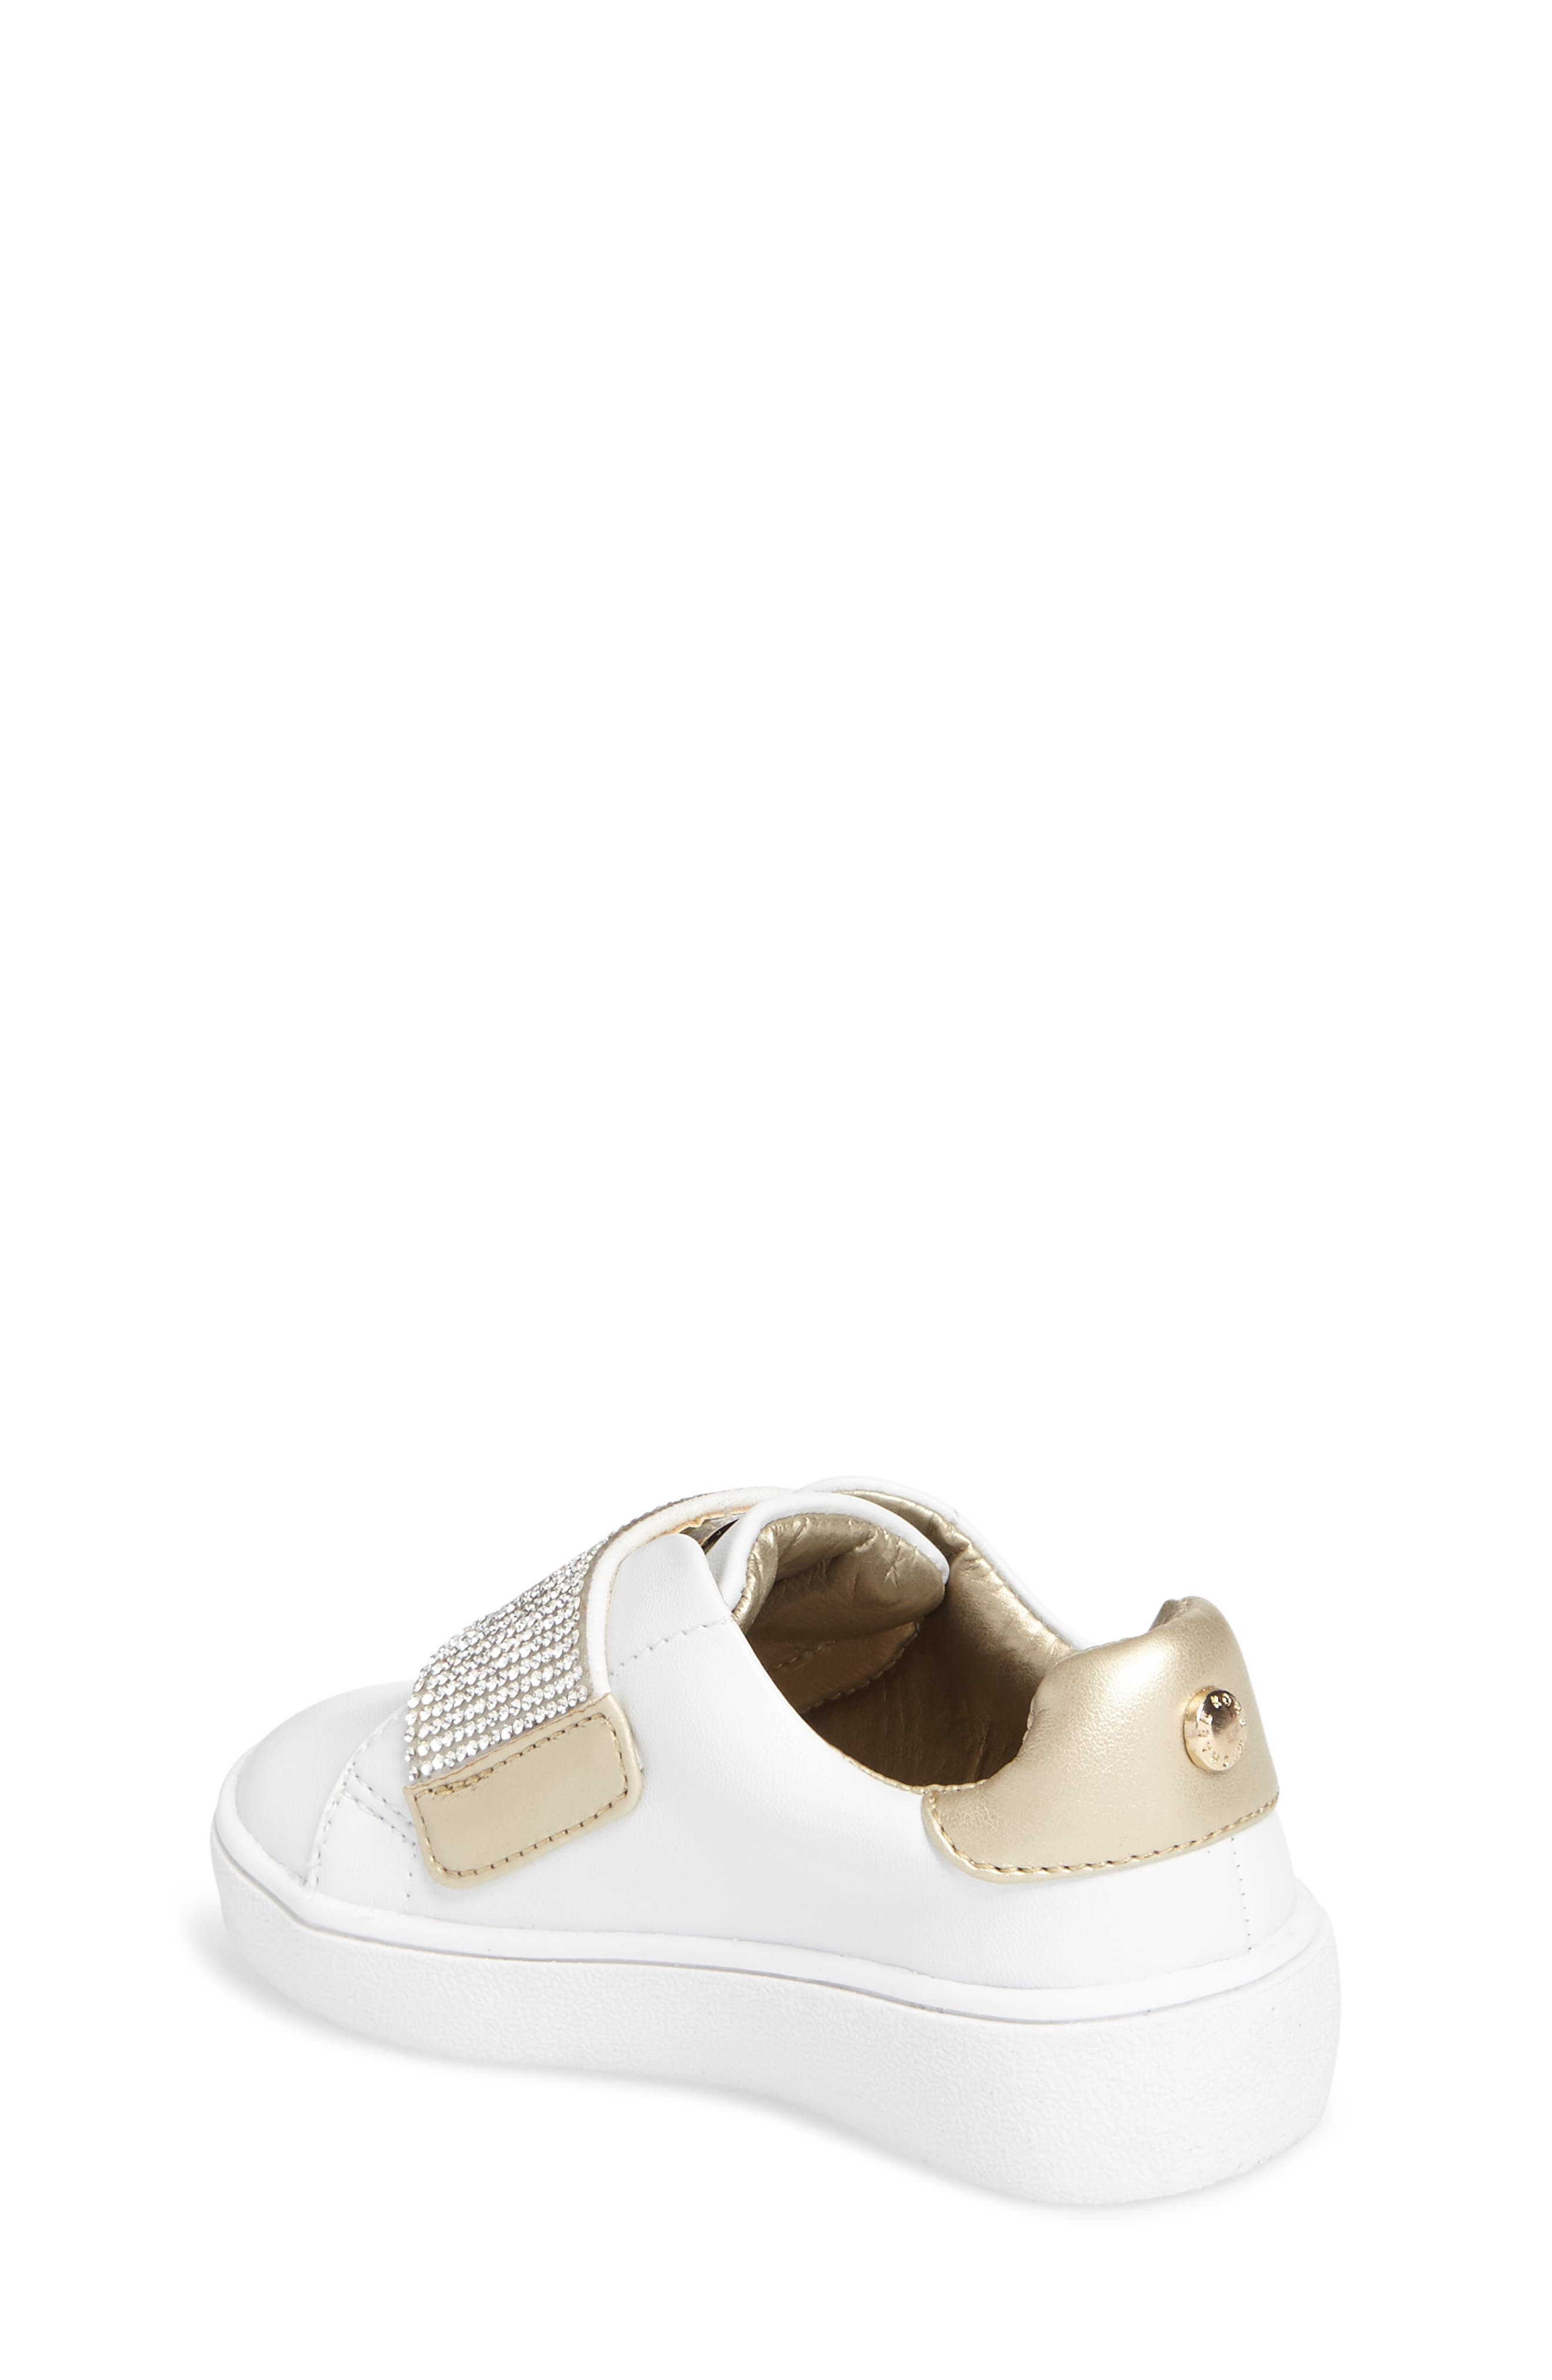 Ivy Candy Sneaker,                             Alternate thumbnail 2, color,                             WHITE GOLD